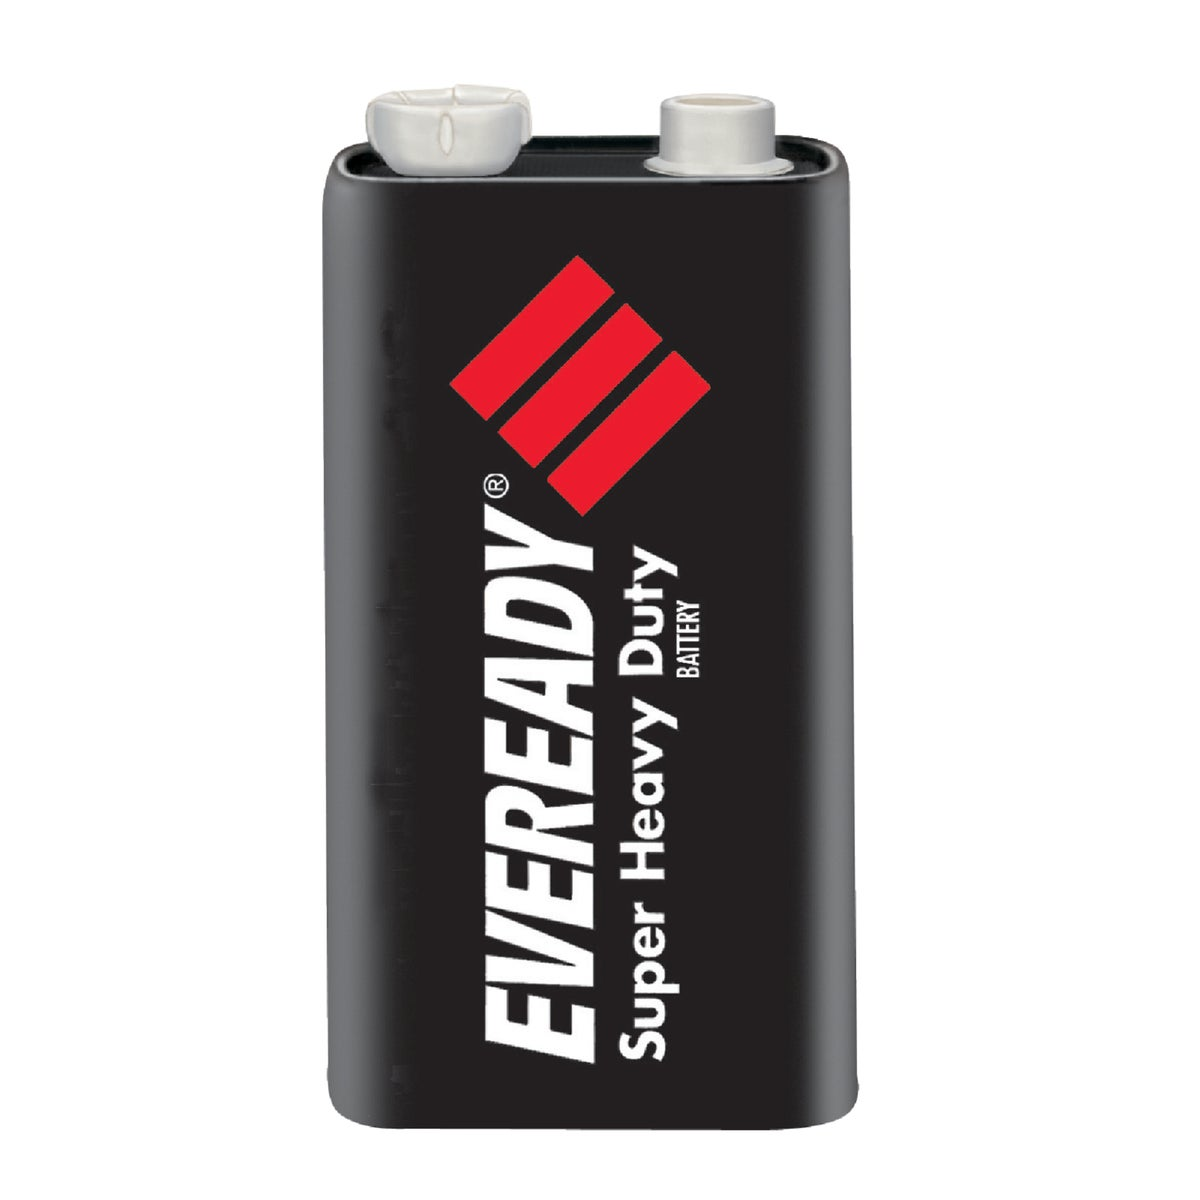 9V HEAVY DUTY BATTERY